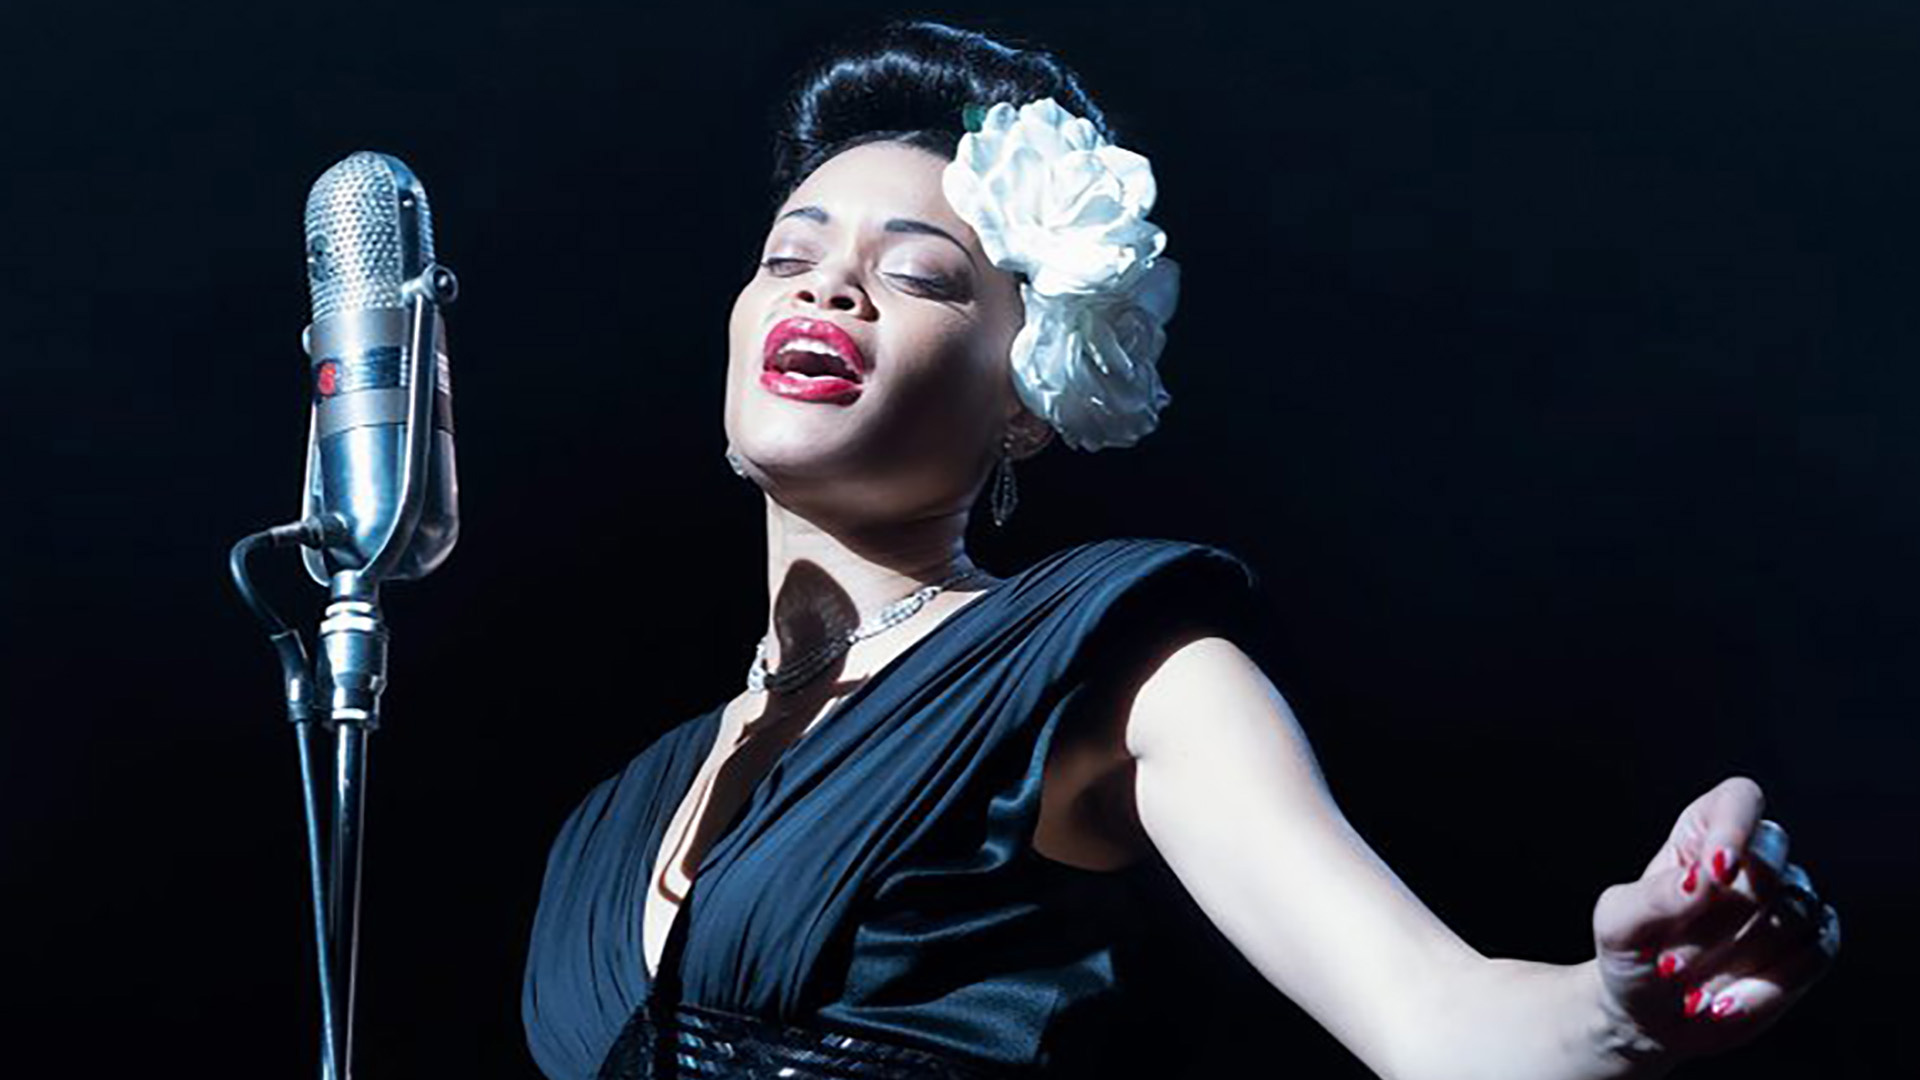 Andra Day is the great Billie Holiday in Lee Daniels' latest